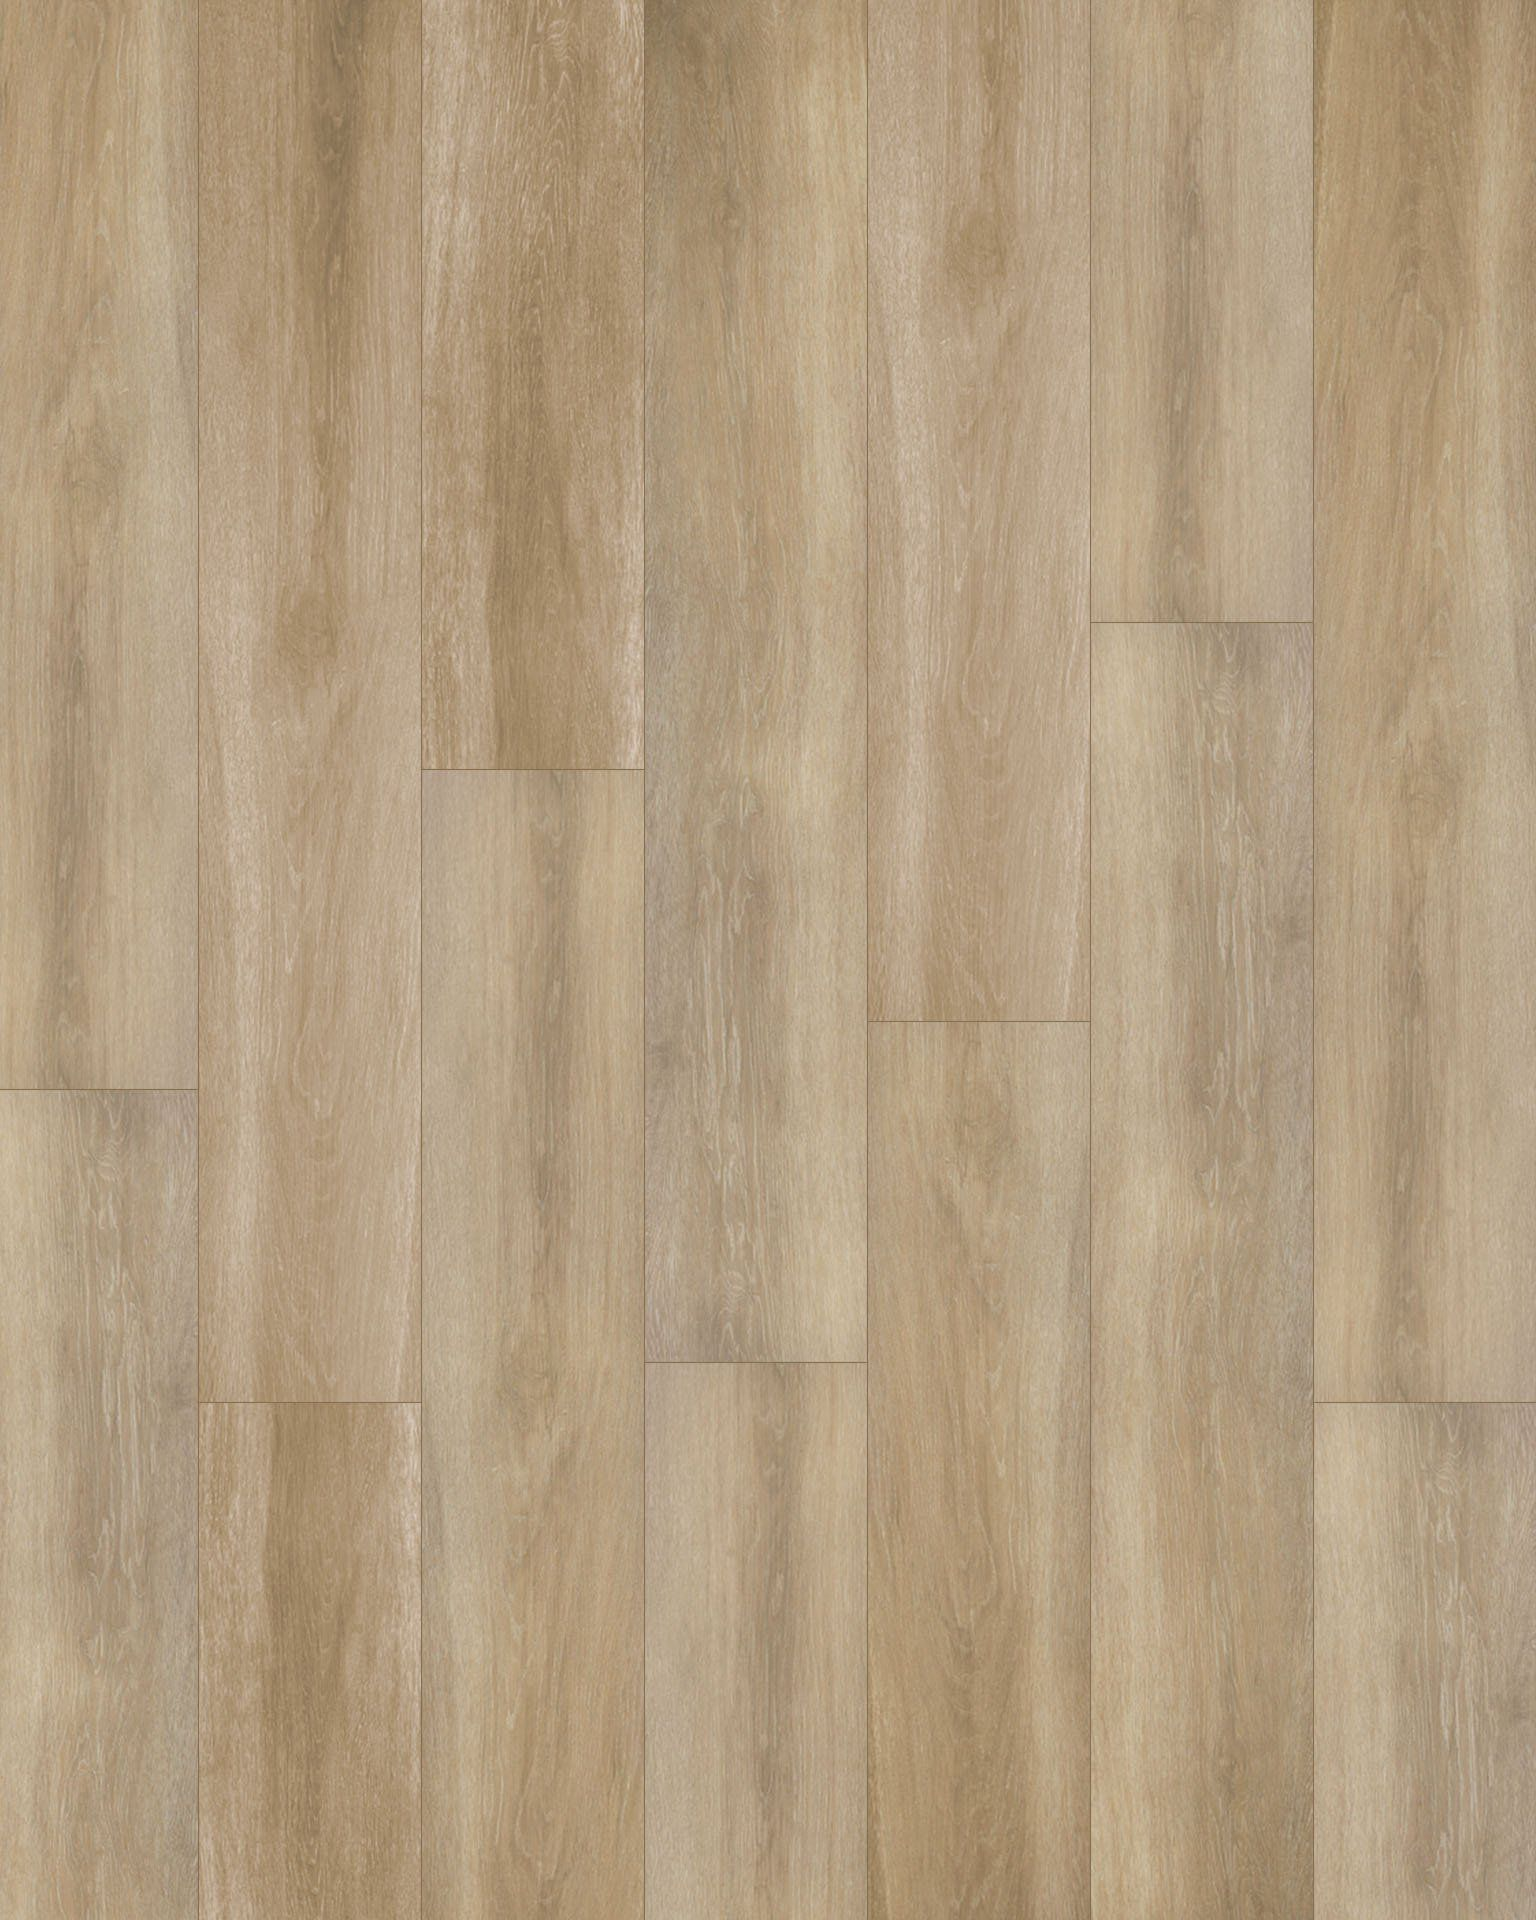 Porcelain Tile Wood Look Oakland